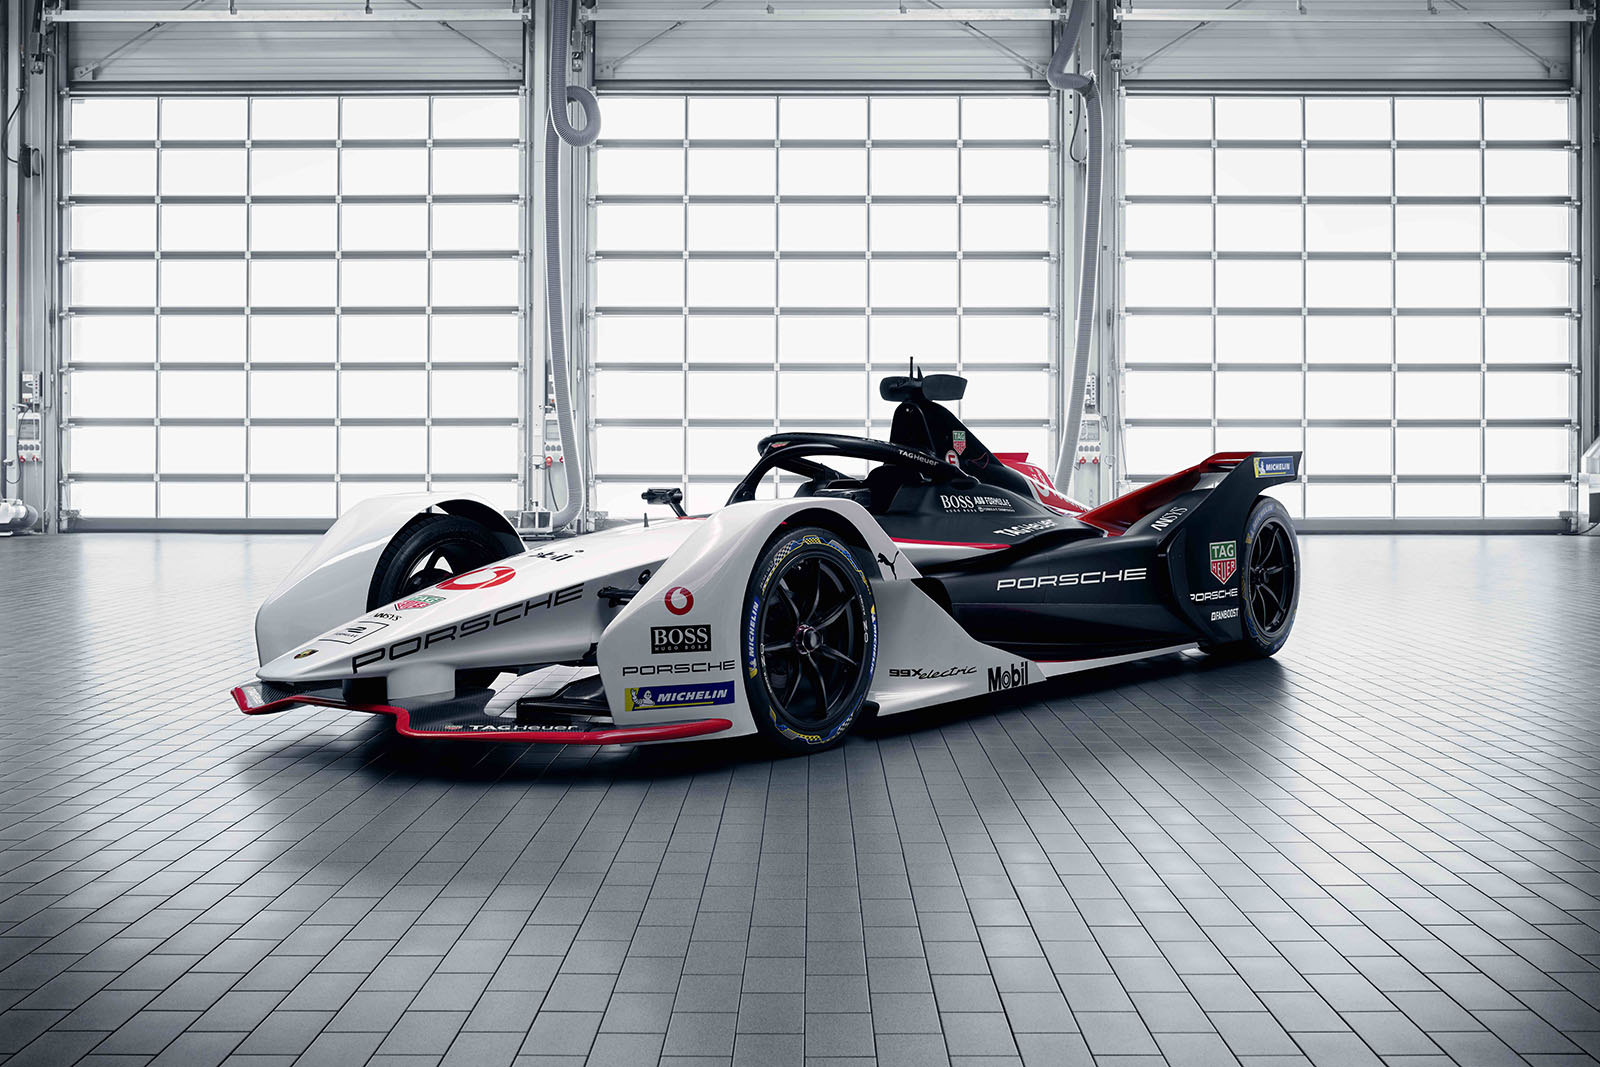 Porsche 99X Electric formula e race car